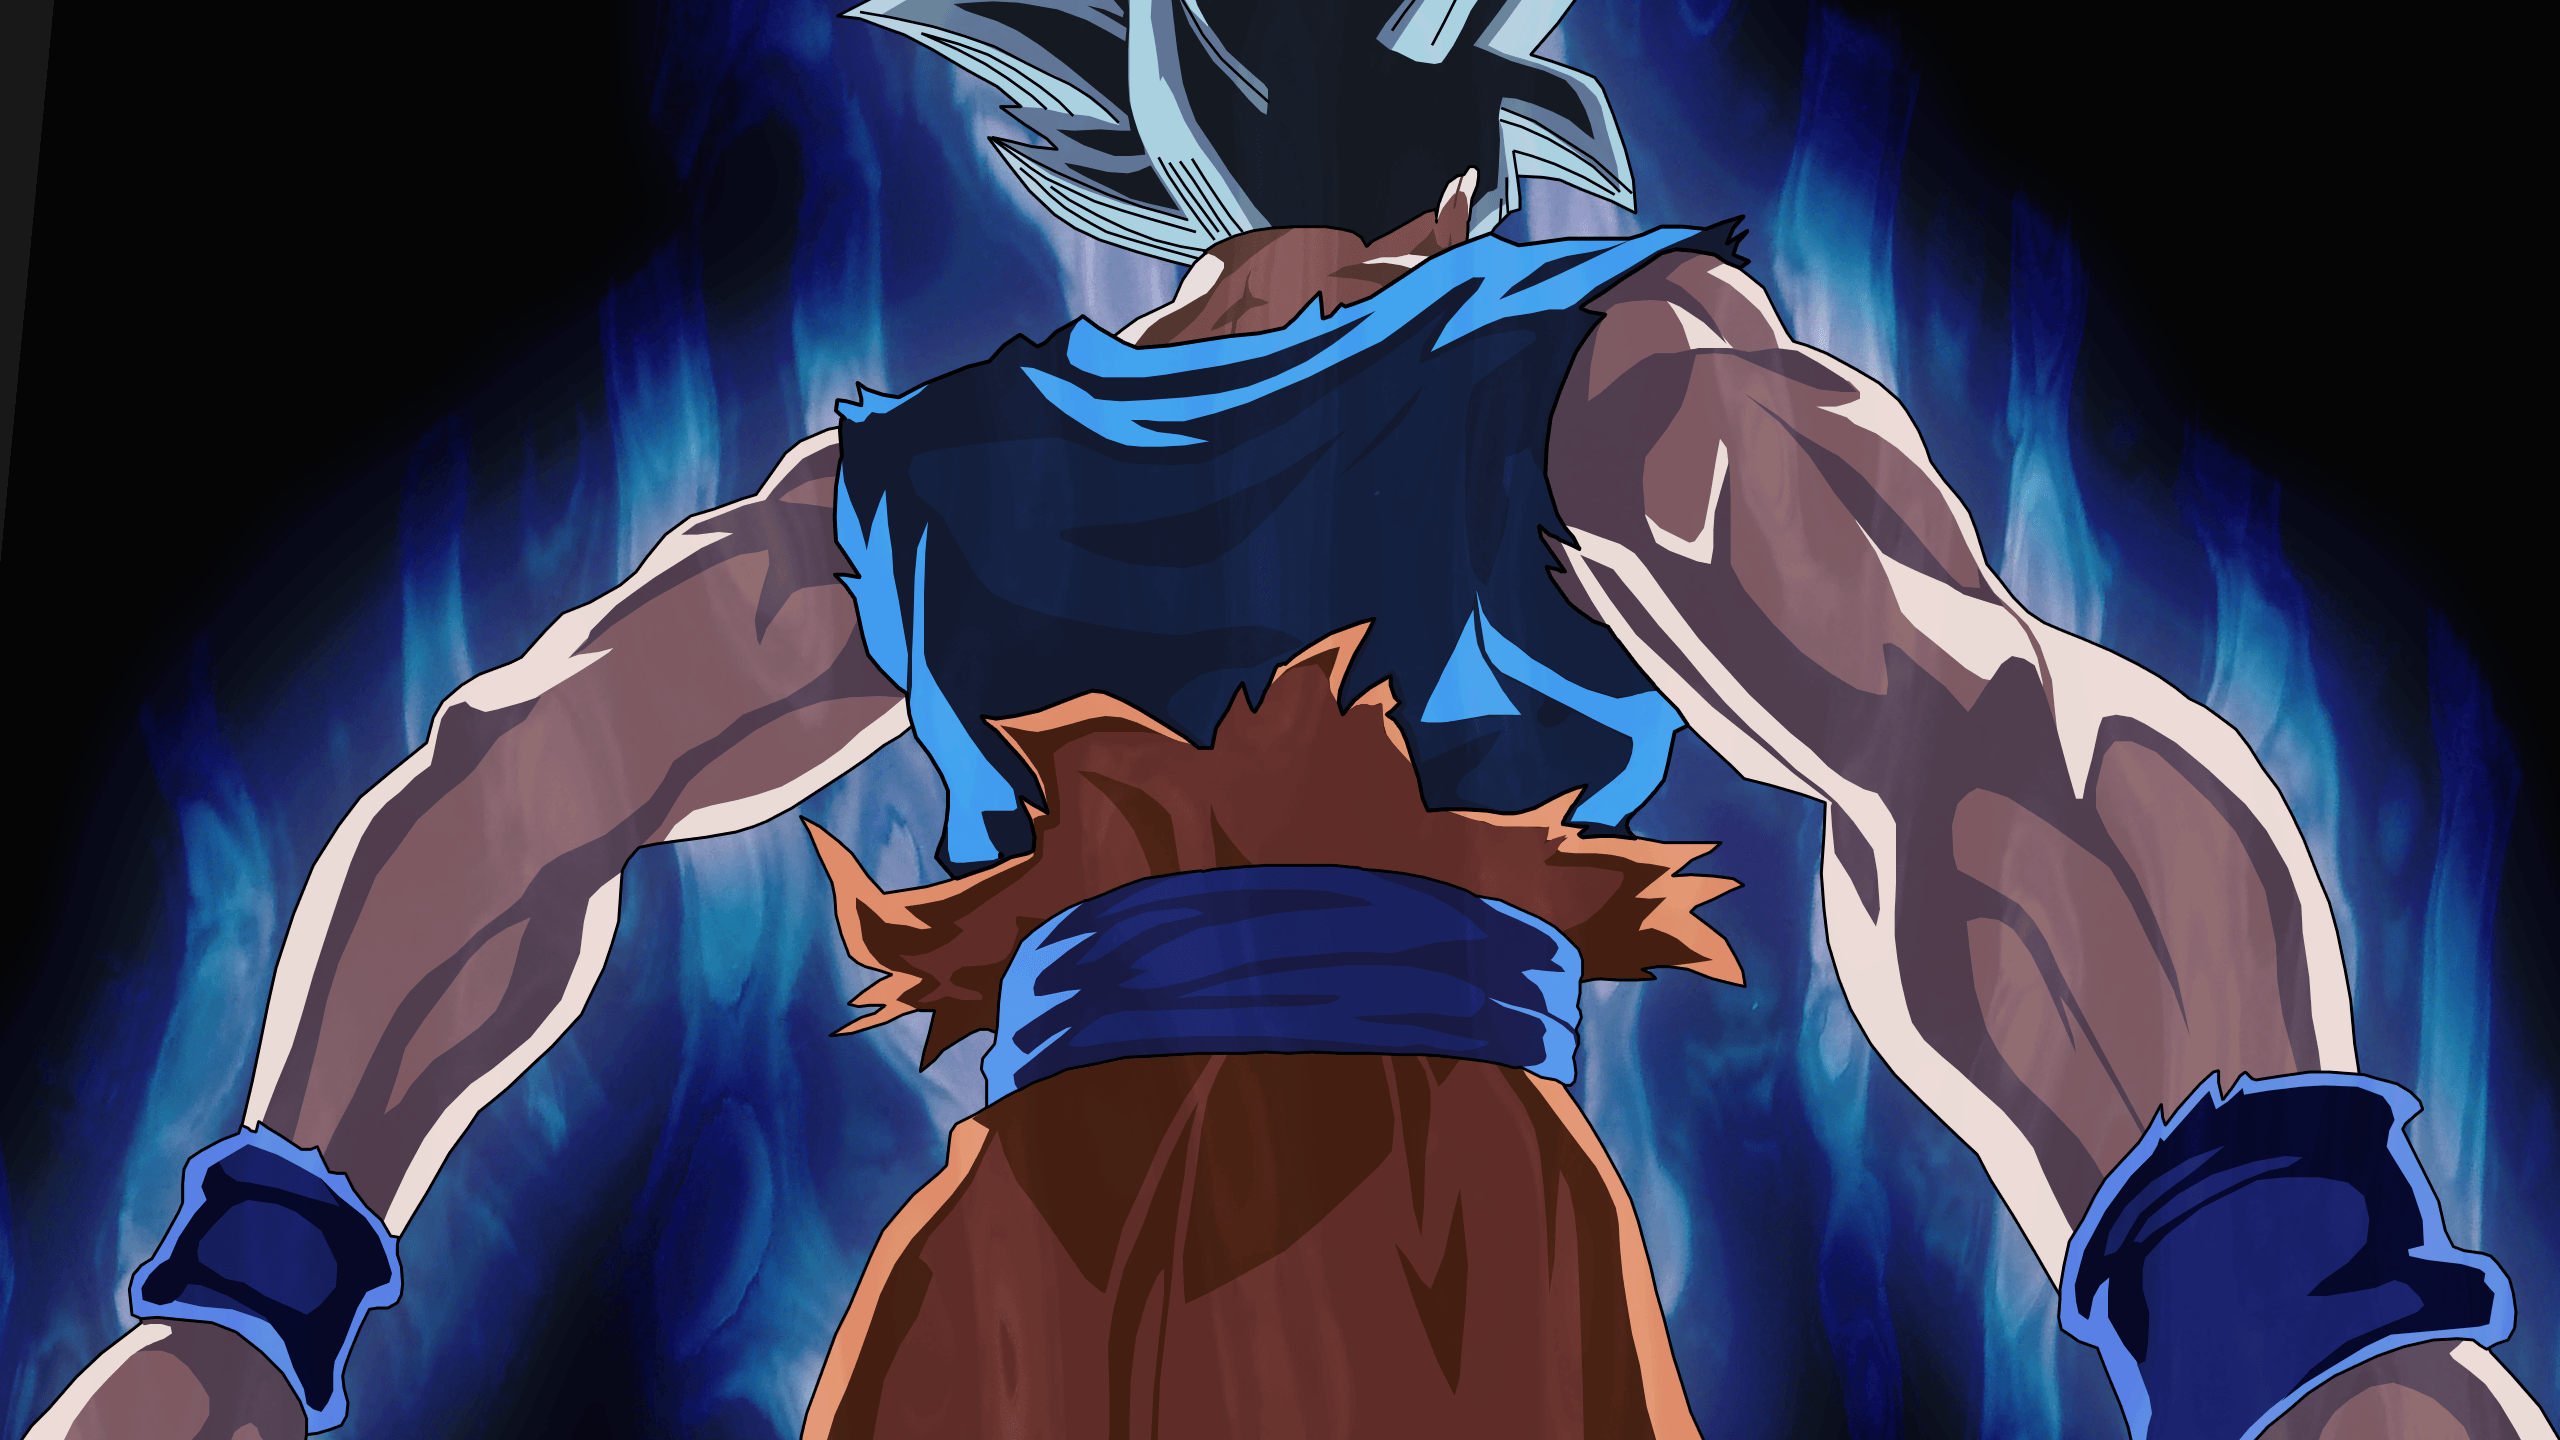 Aesthetic Ui Goku Wallpapers Wallpaper Cave